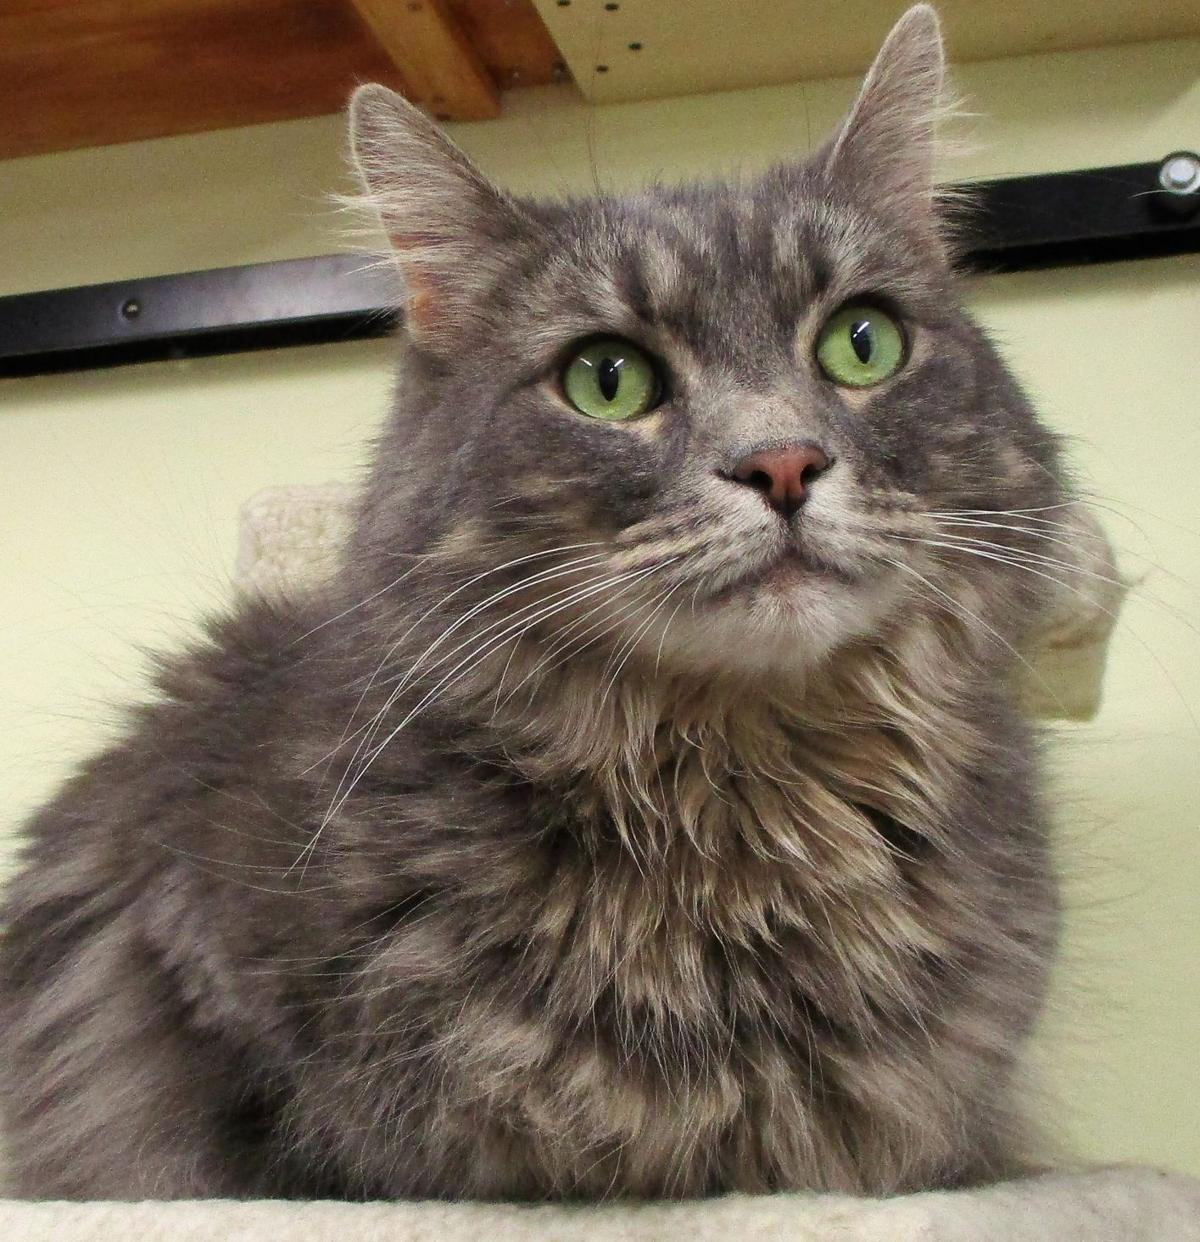 Every cat has a story at Torrington's Kitty Quarters